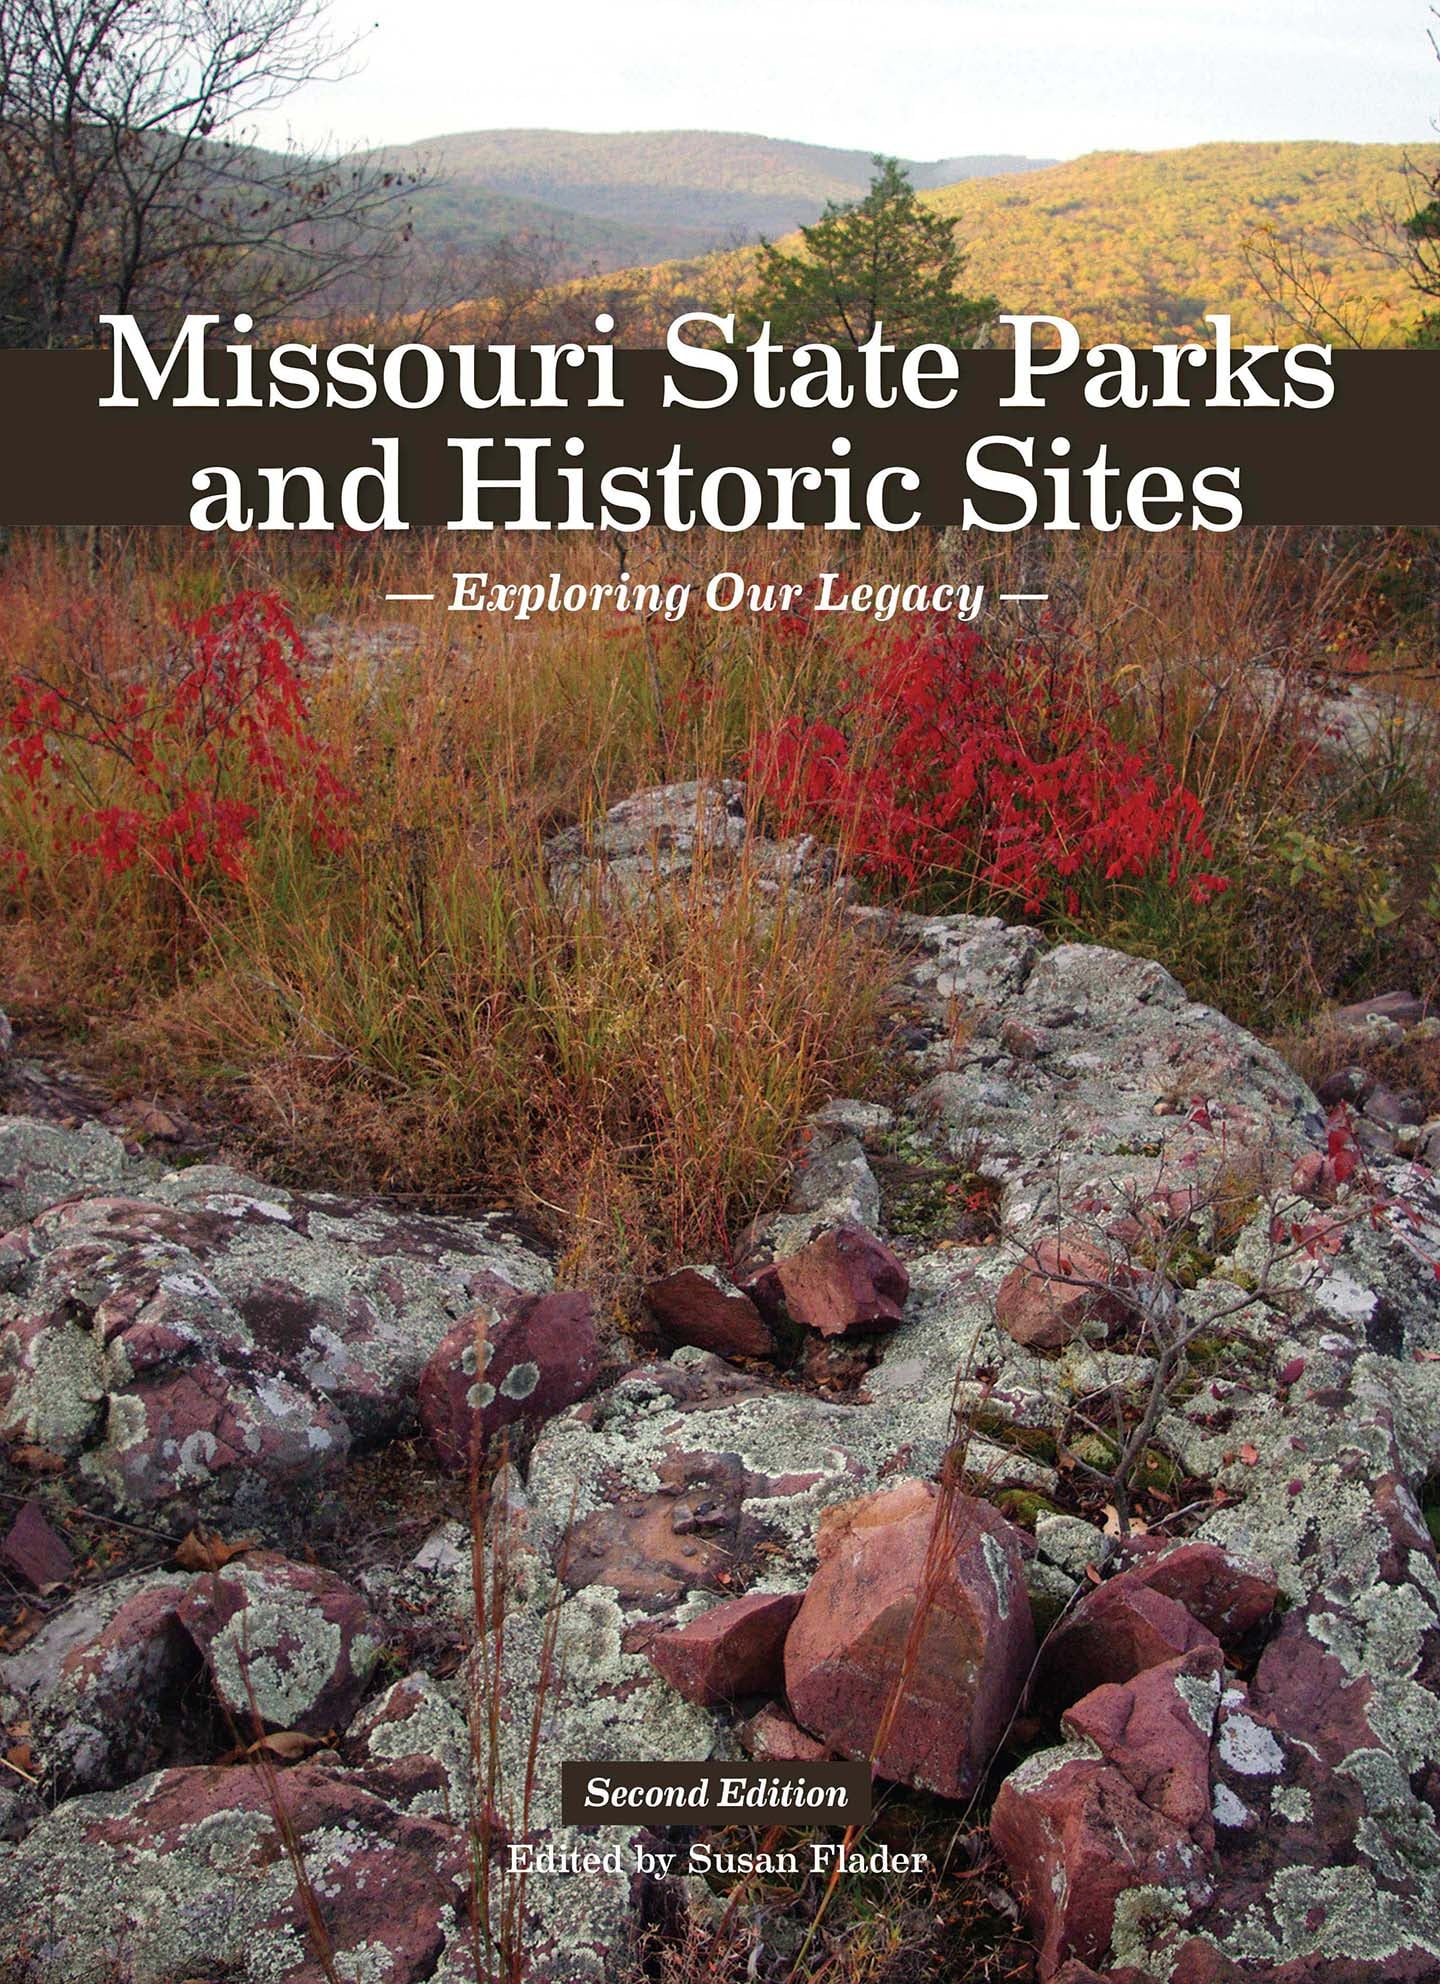 Missouri State Park and Historic Sites